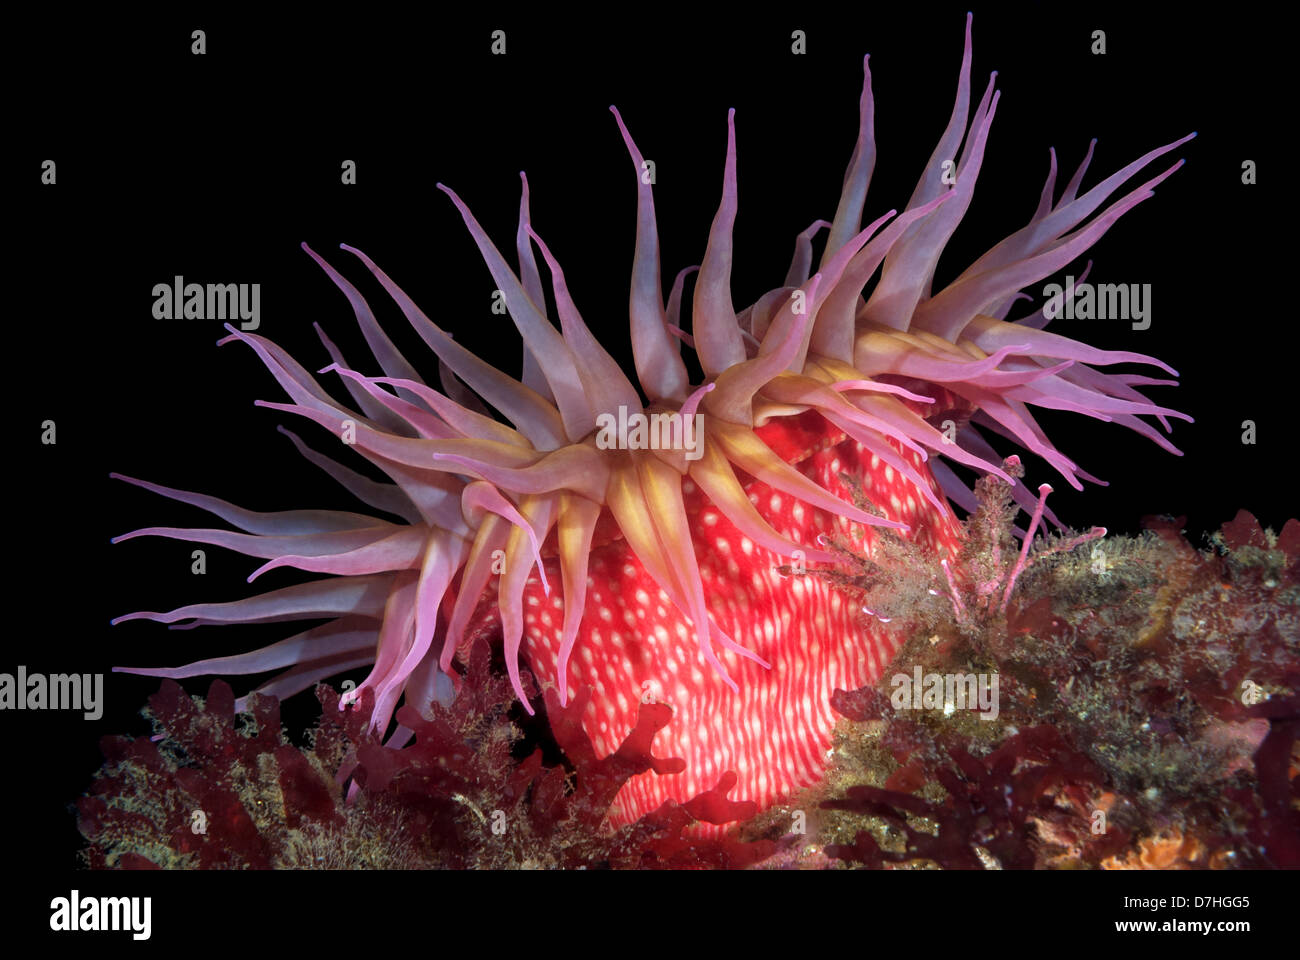 A beautiful red rose sea anemone with tentacles fully exposed - Stock Image